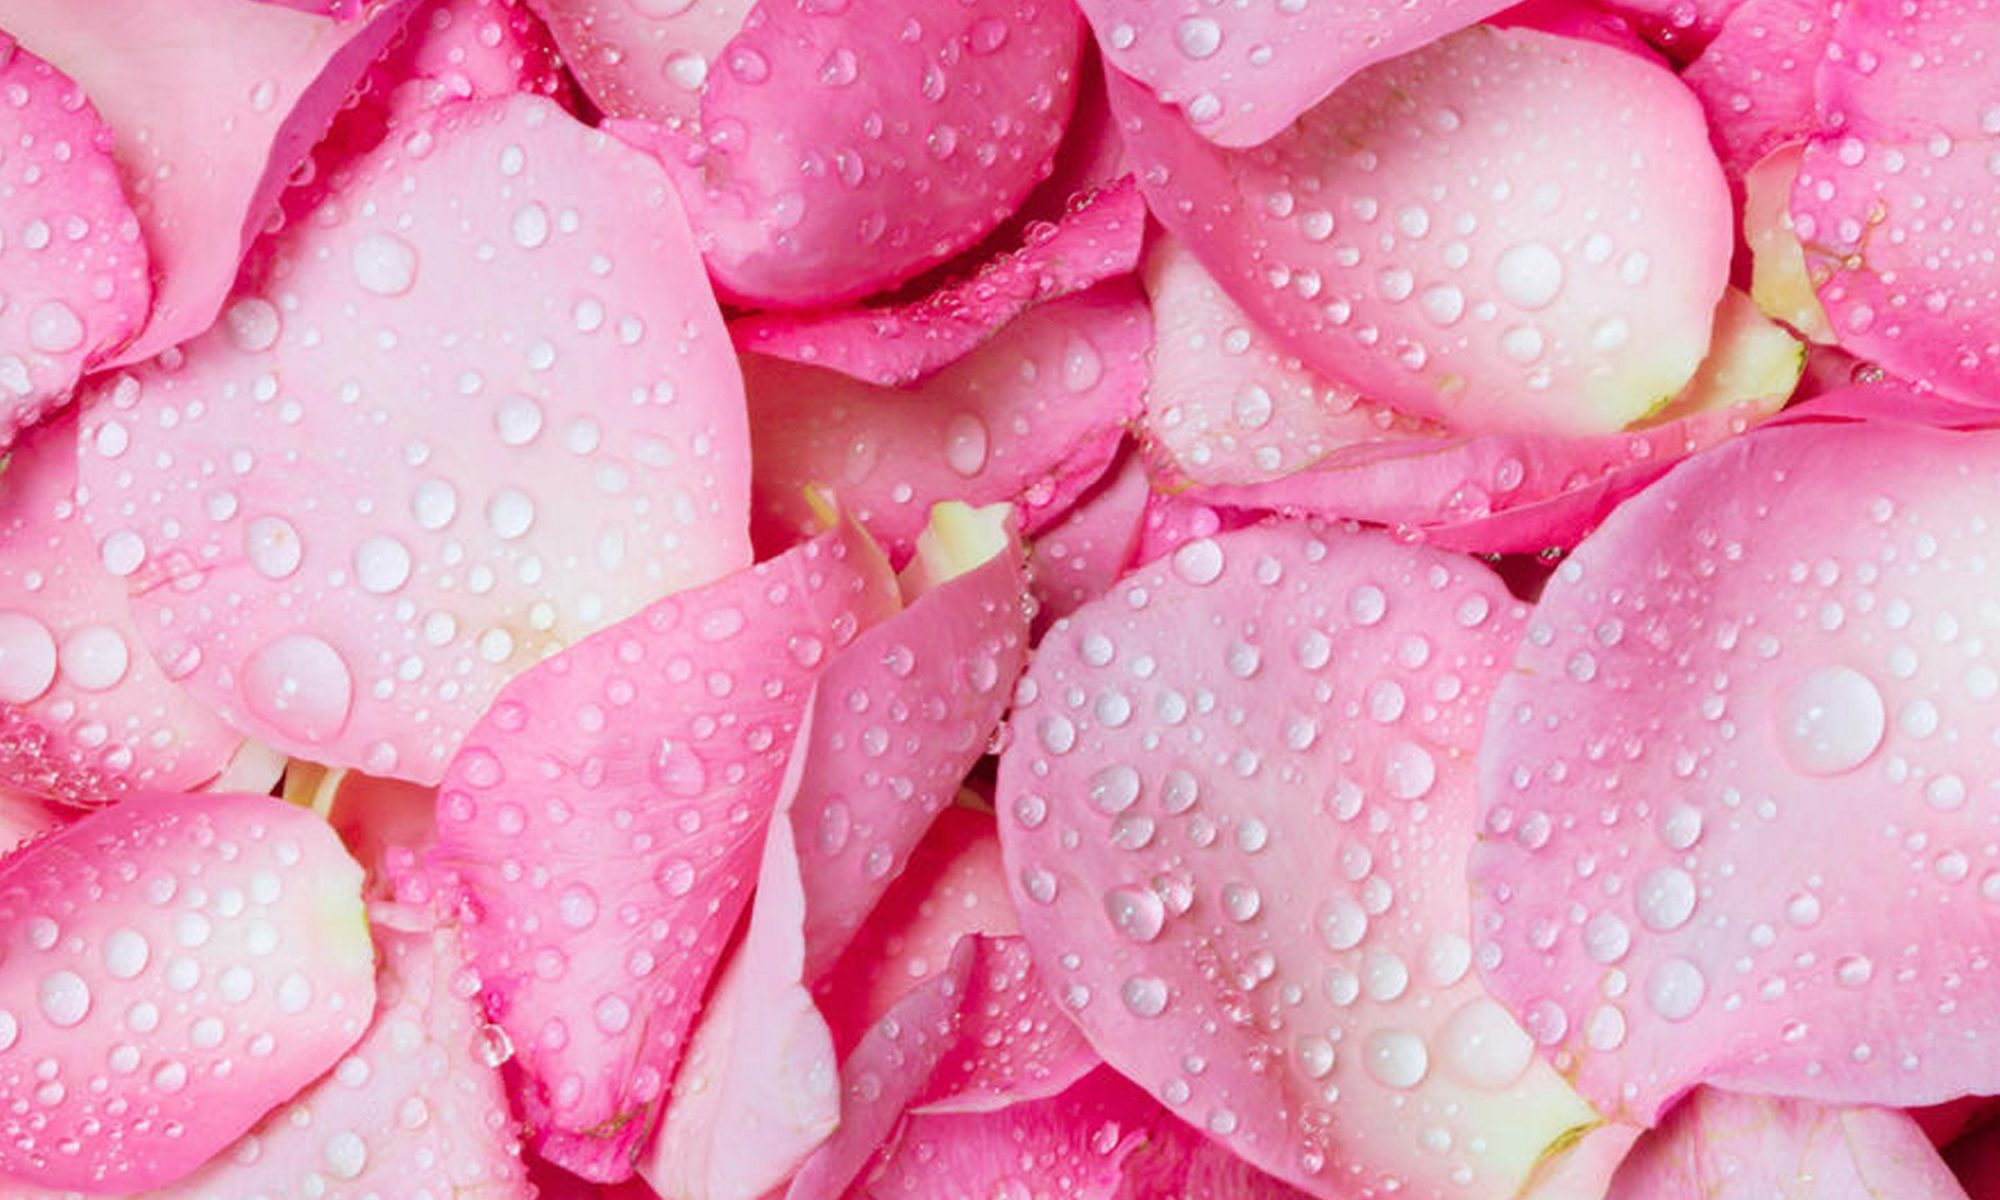 EC: How to Cook with Rose Water